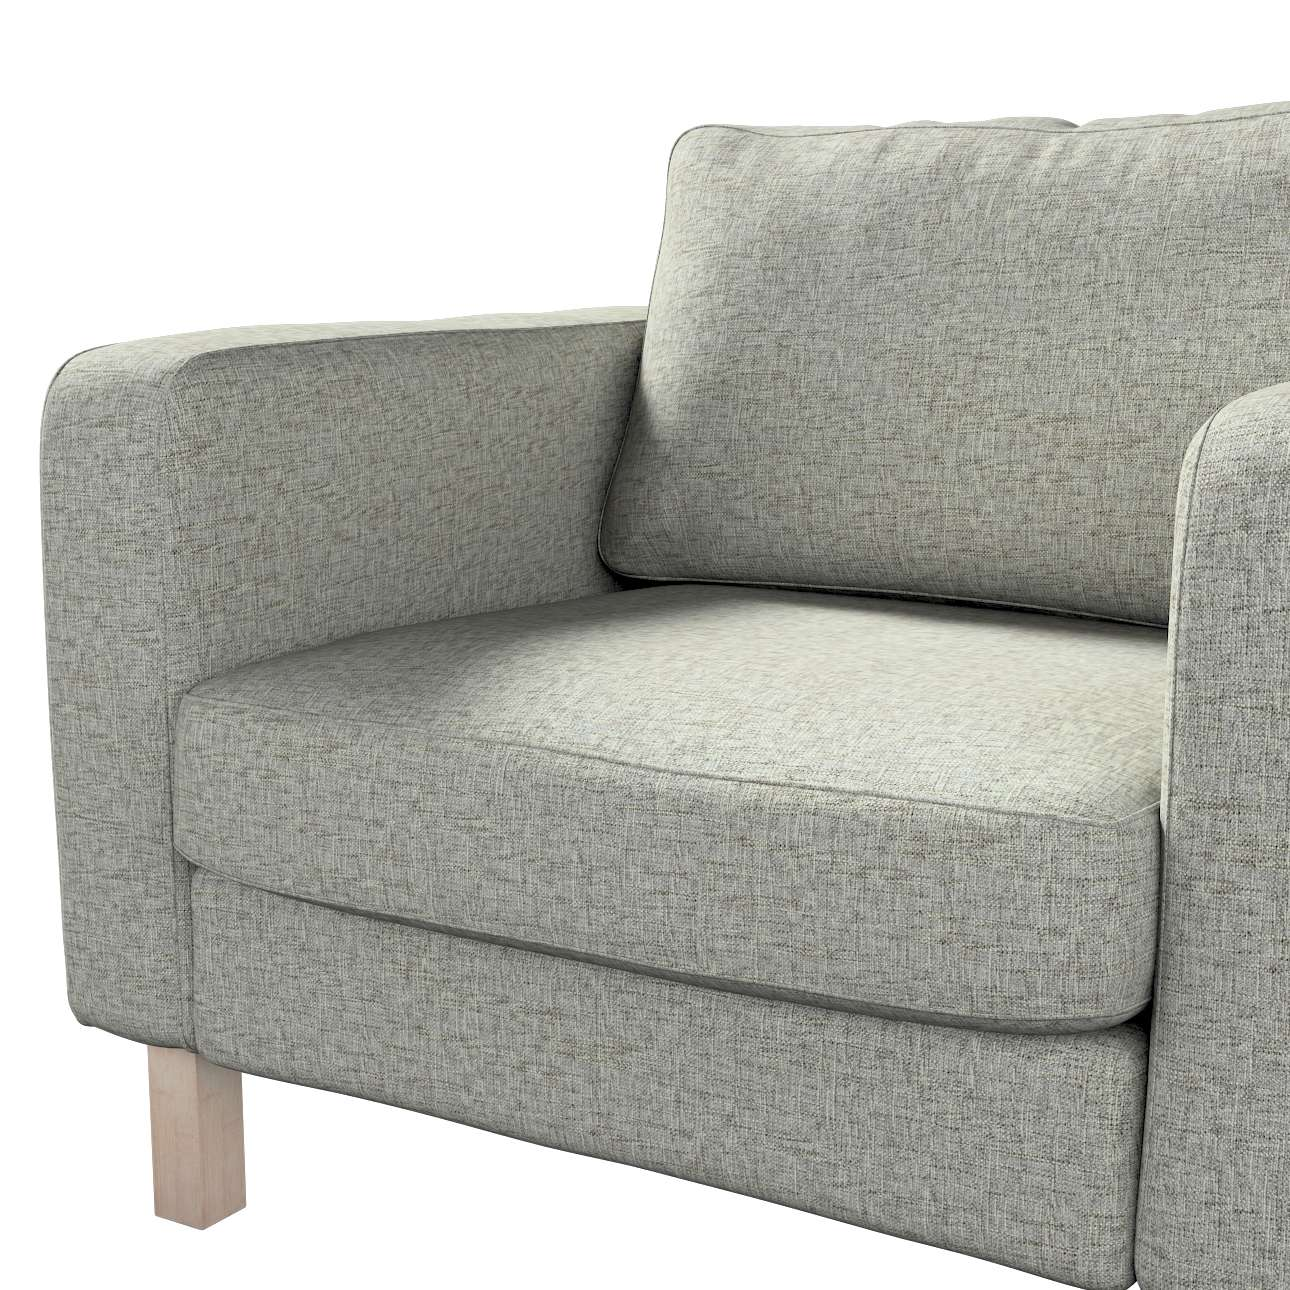 Karlstad armchair cover in collection Living, fabric: 106-96